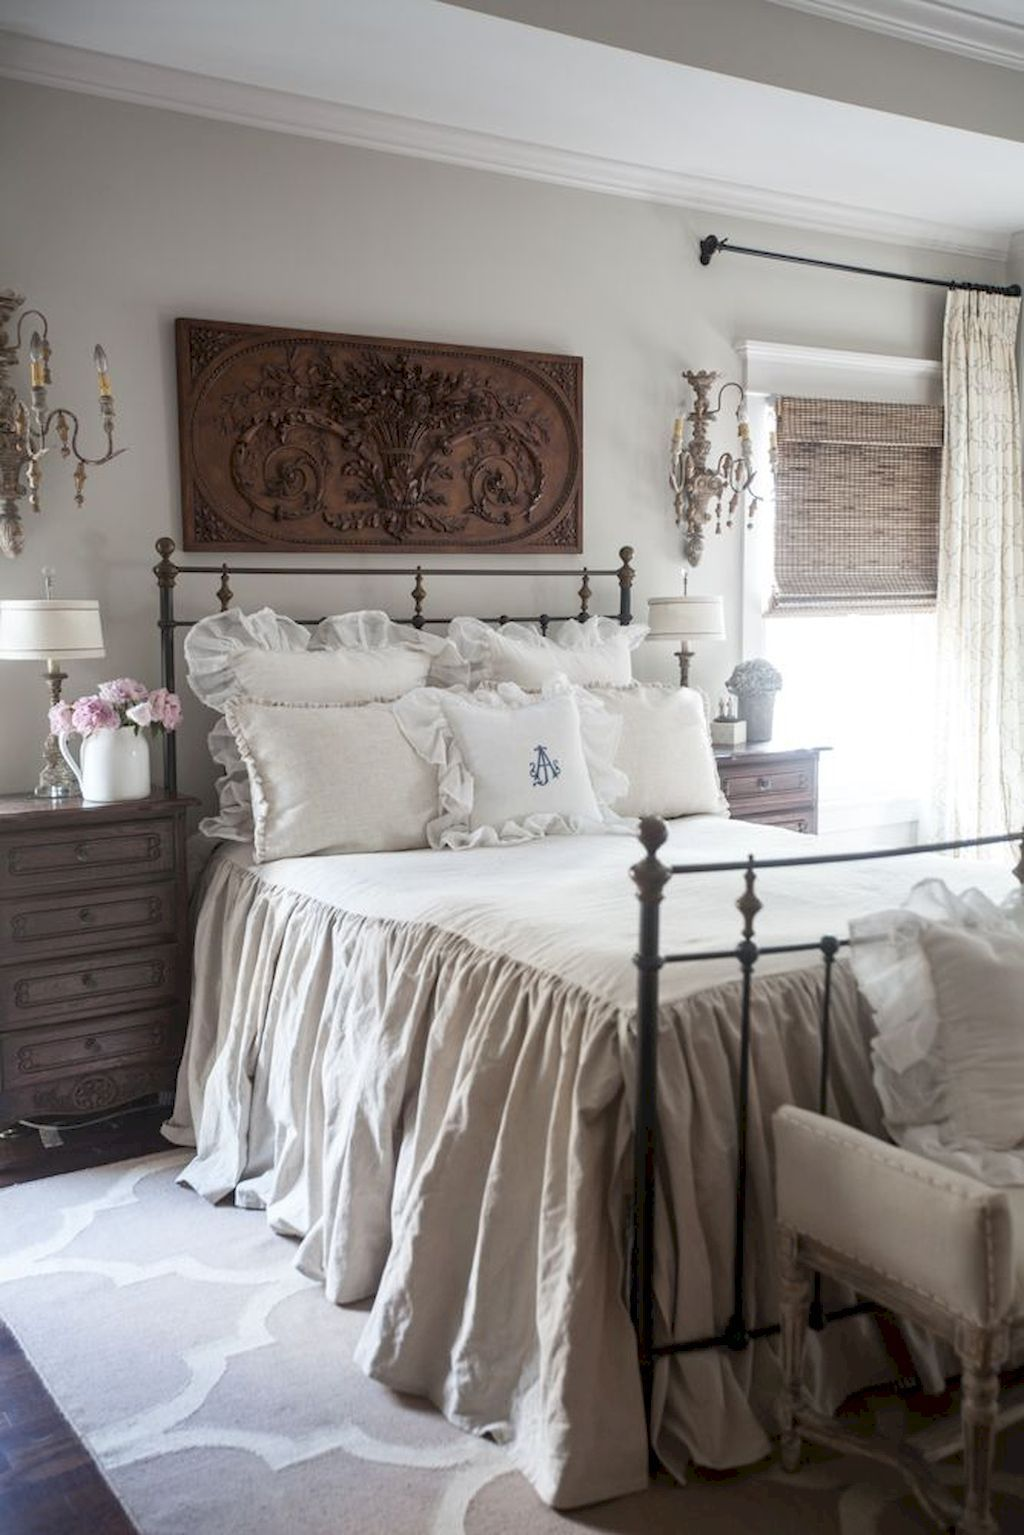 01 Simple French Country Bedroom Decor Ideas On A Budget Country